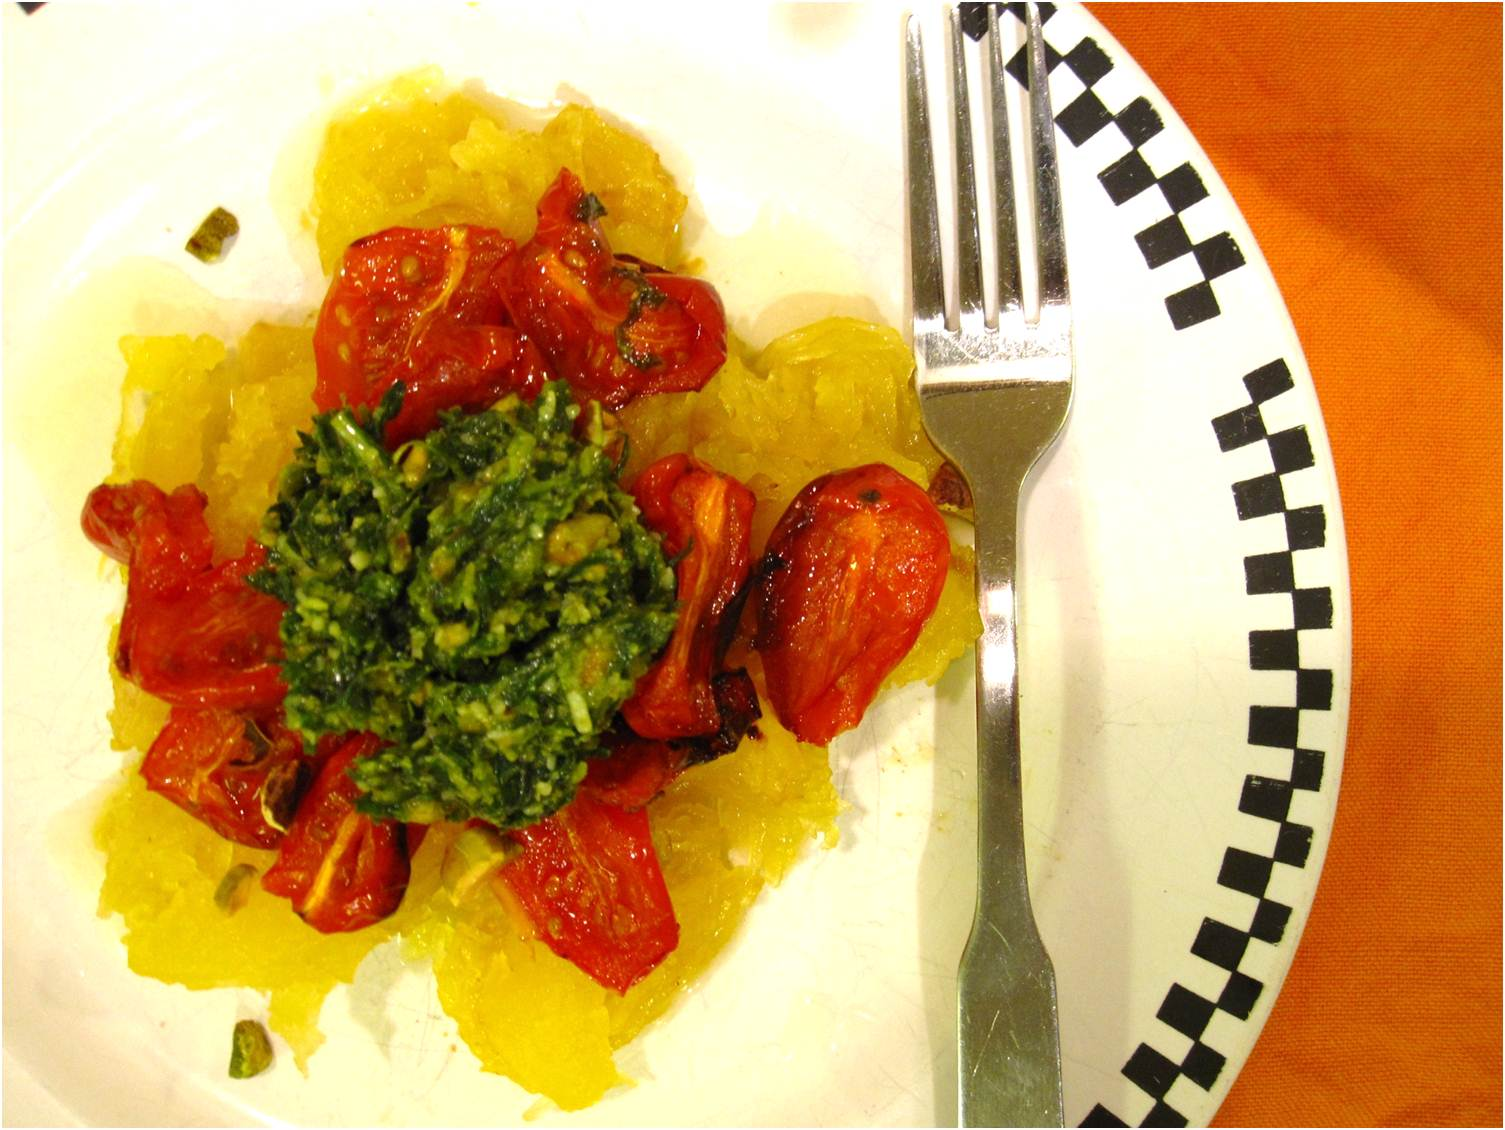 ... : Spaghetti squash with roasted tomatoes and pistachio-basil pesto